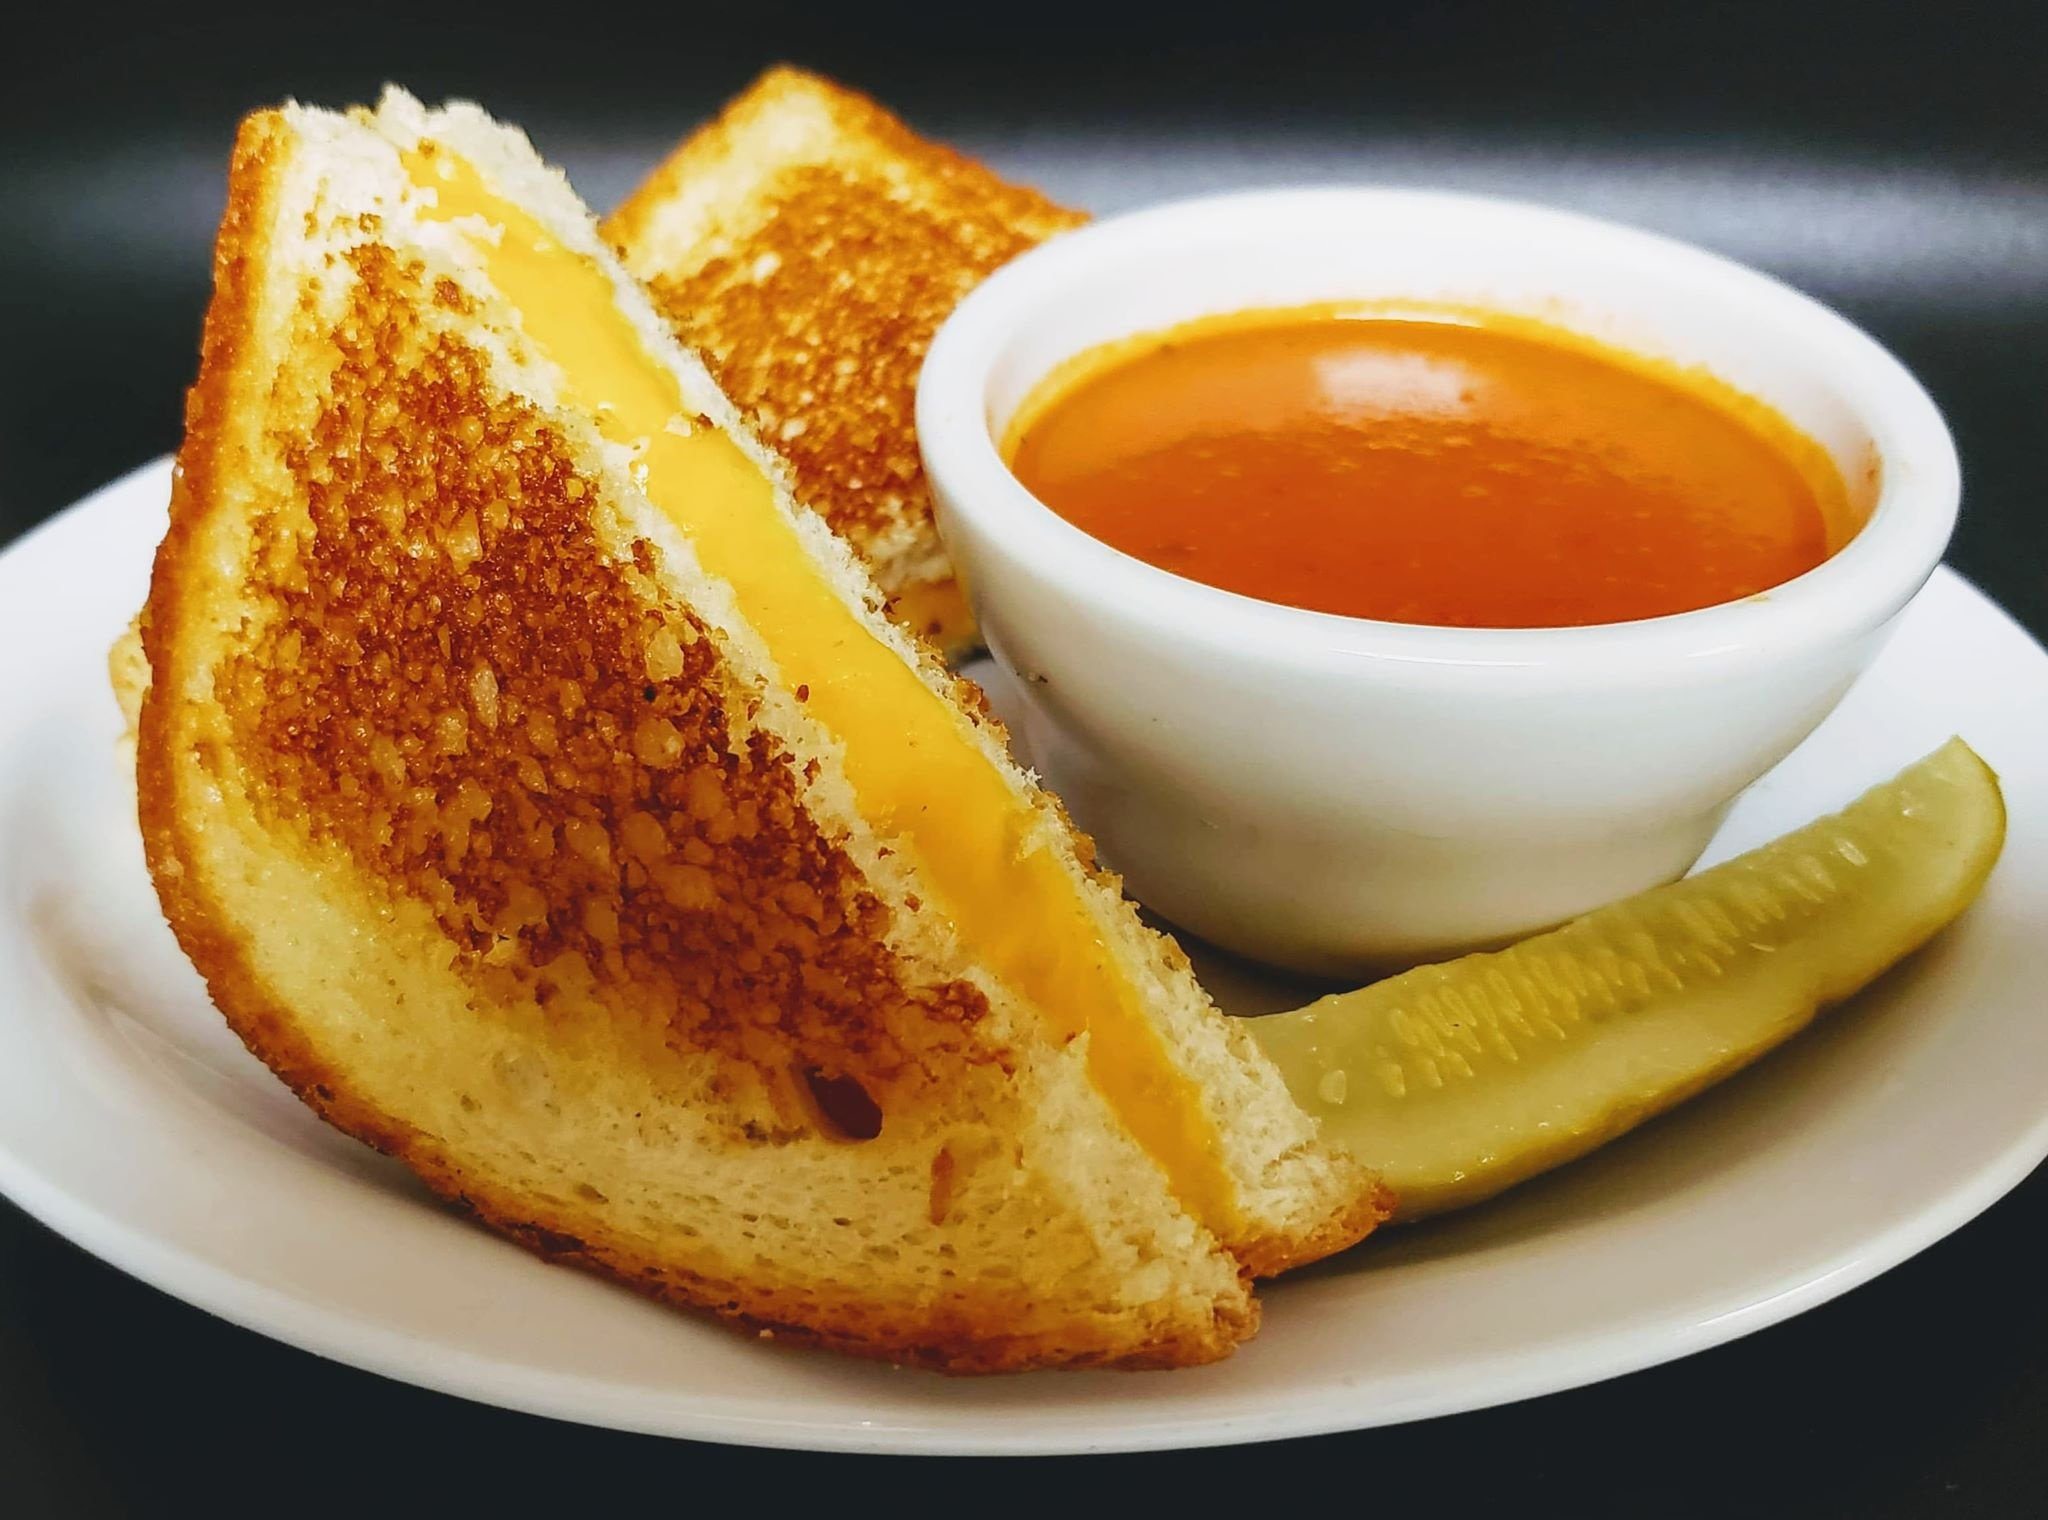 https://0201.nccdn.net/4_2/000/000/046/6ea/Grilled-Cheese-2048x1520.jpg